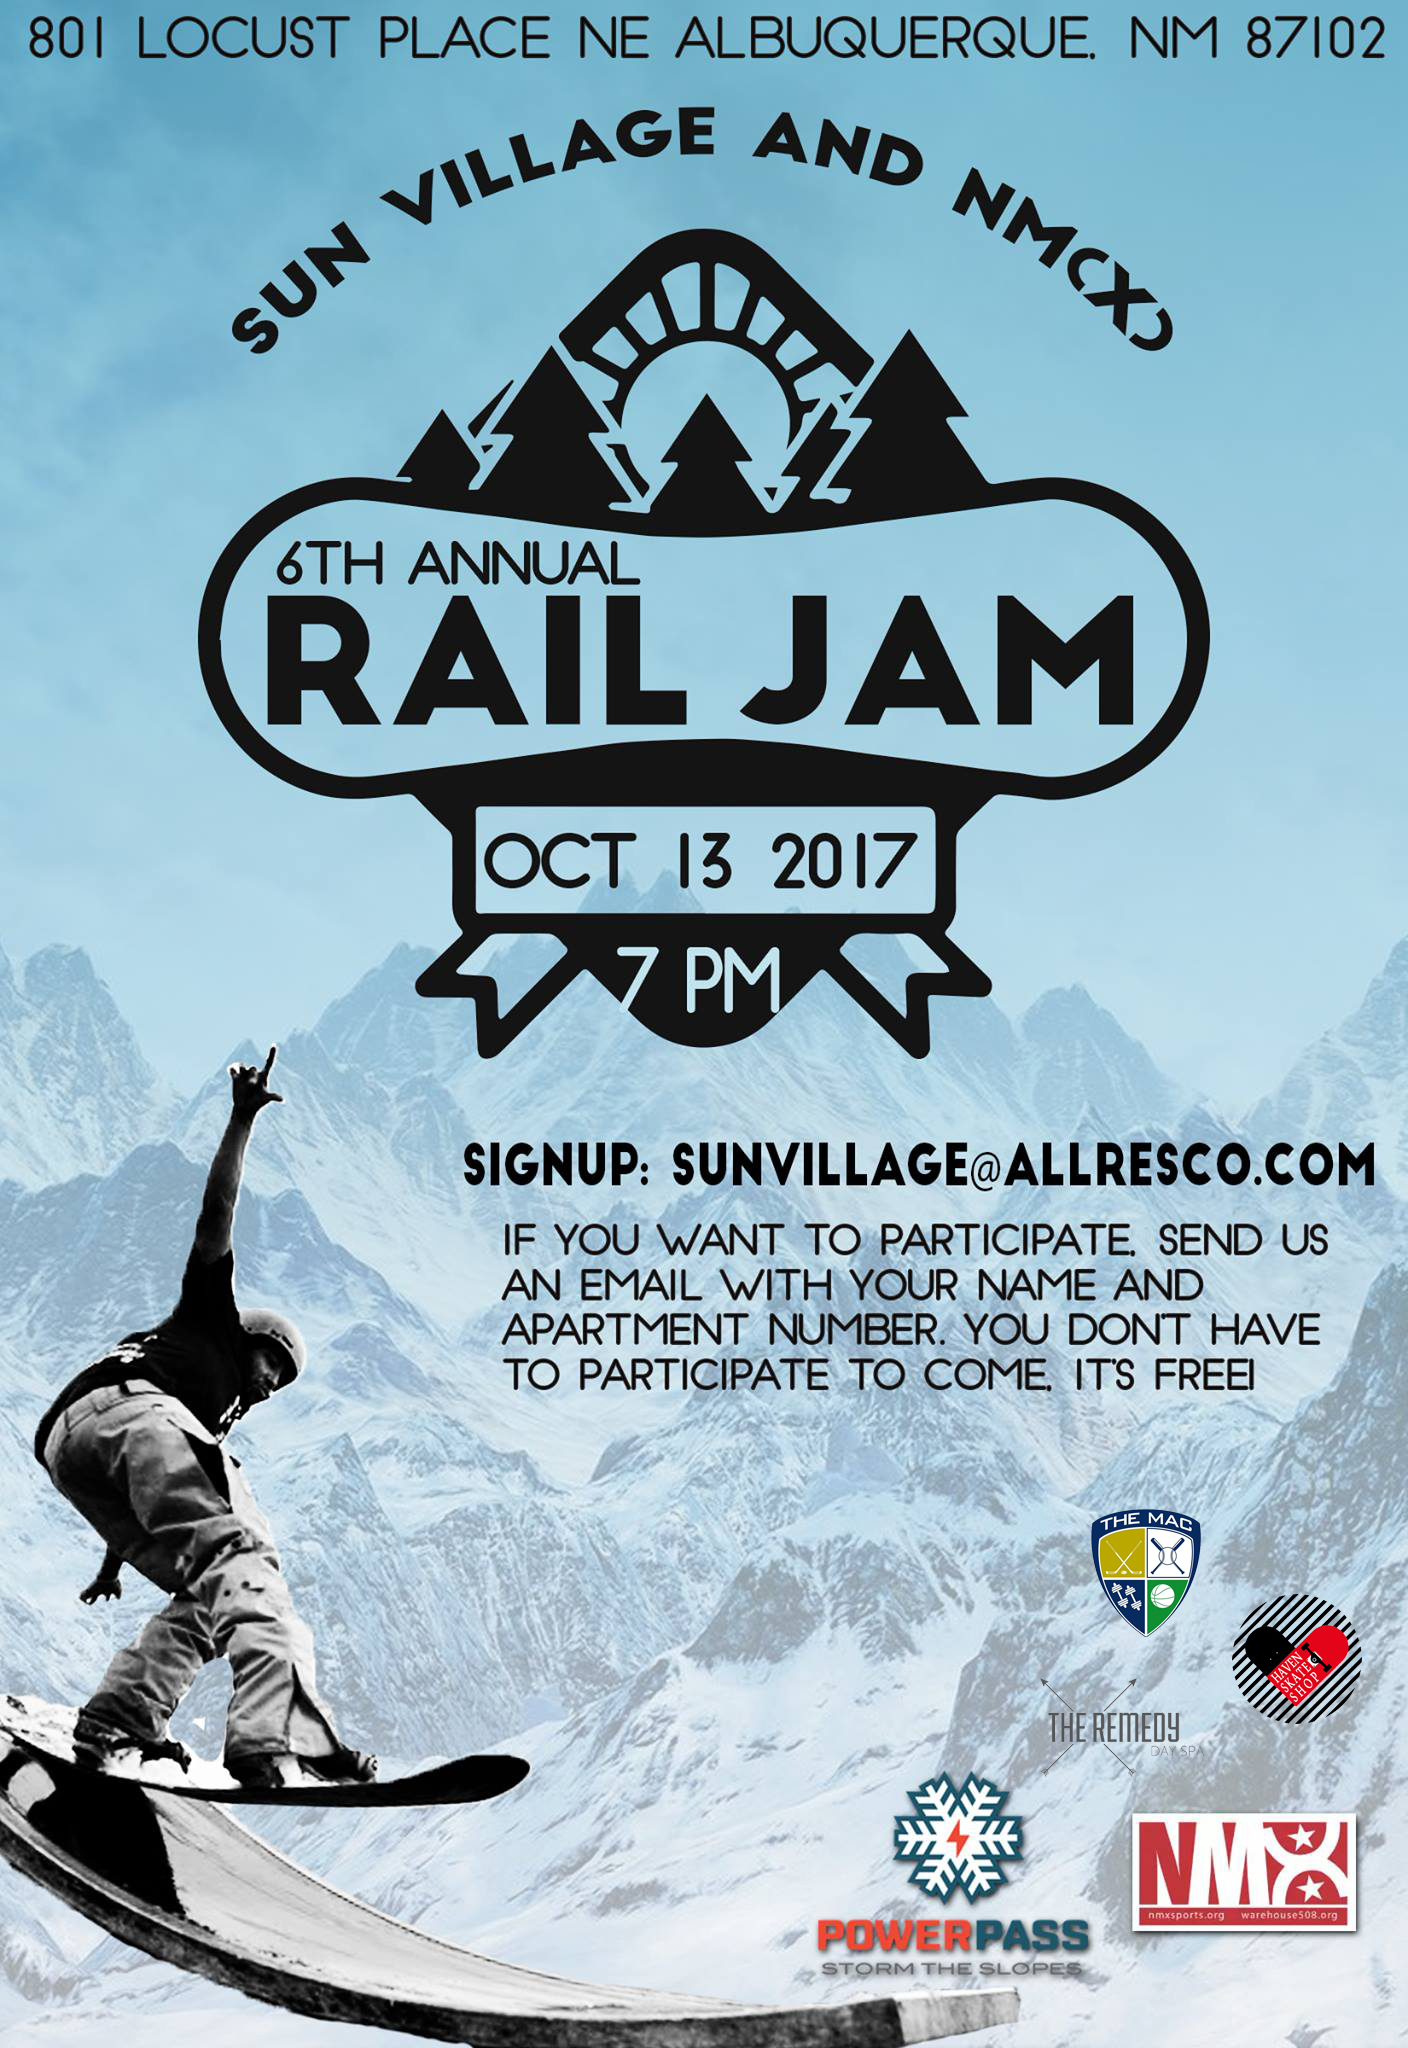 Sixth Annual Rail Jam at Sun Village Apartments, Albuquerque